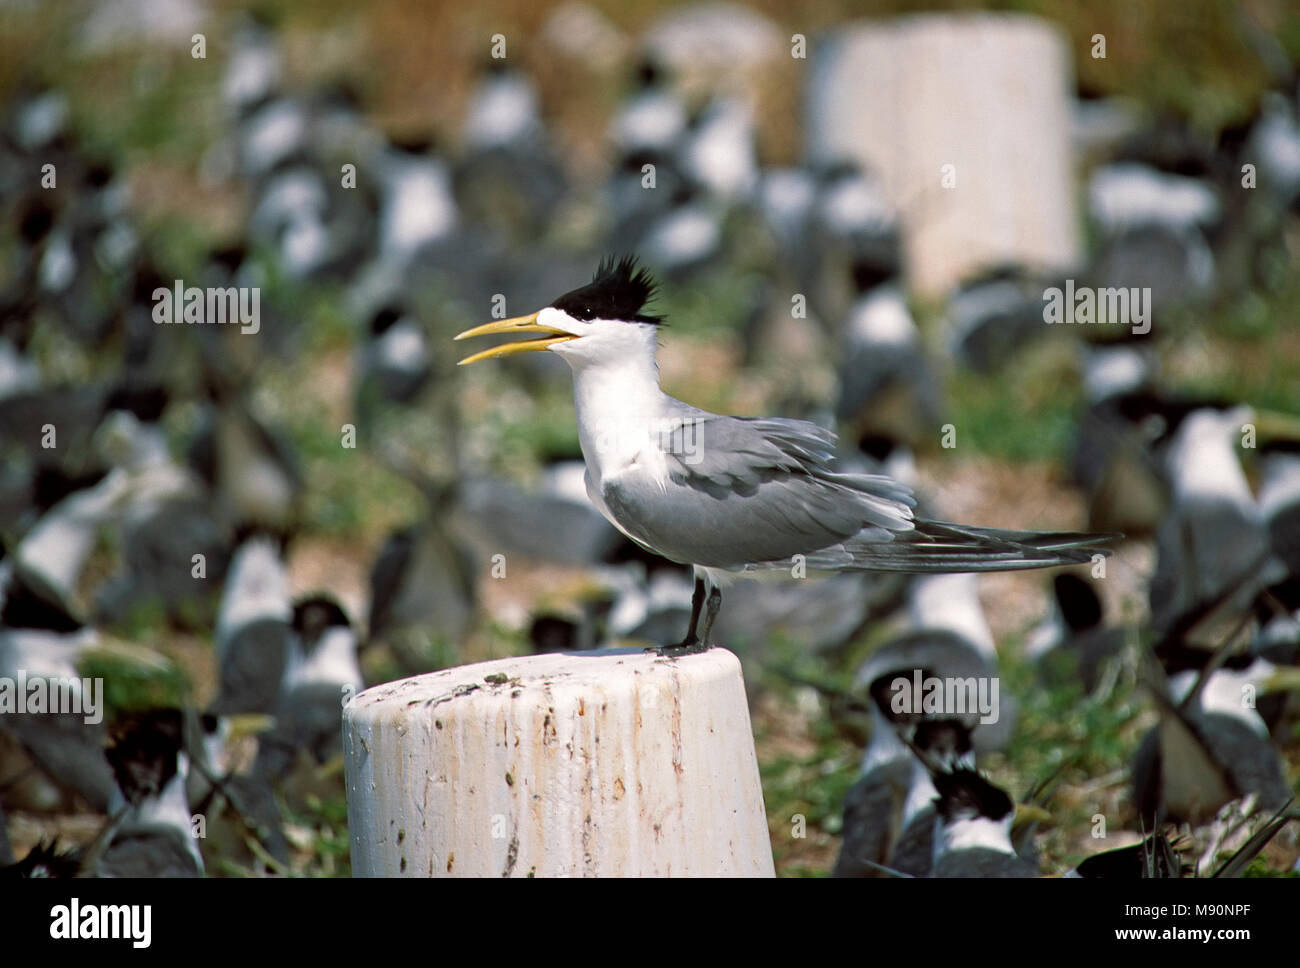 Grote Kuifstern broed kolonie Australie, Great Crested-Tern breeding colony Australia - Stock Image